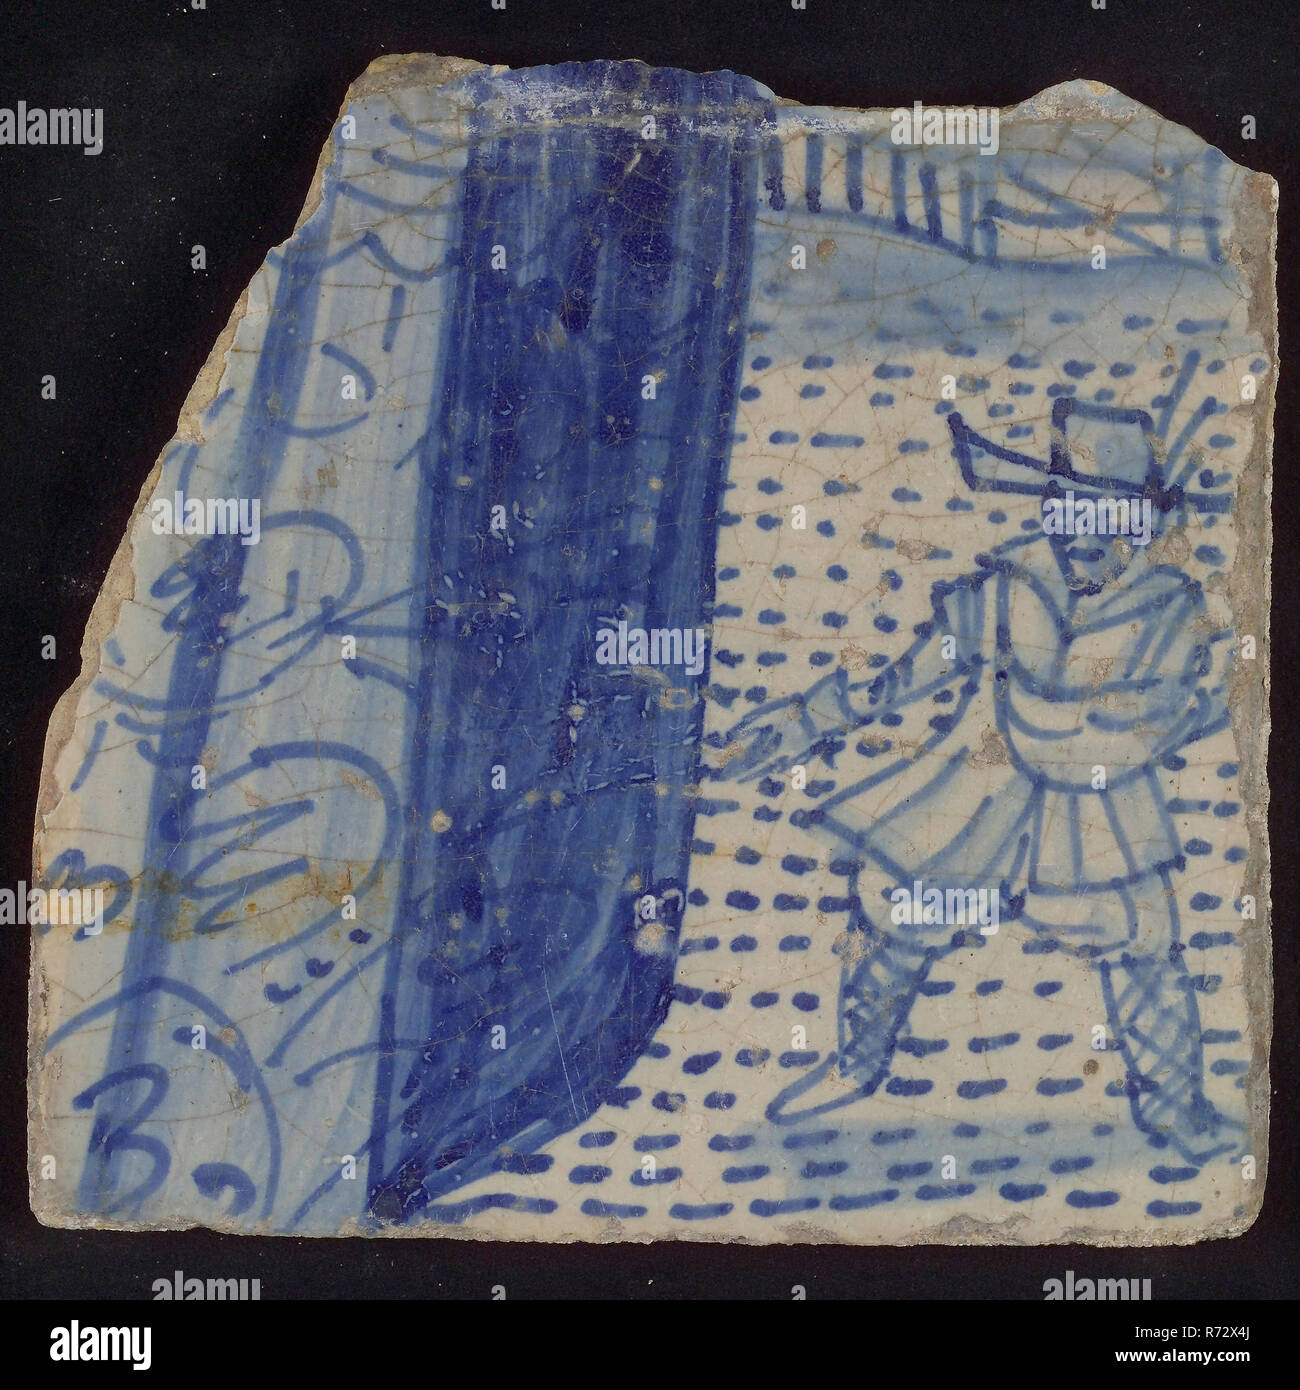 Loose tile of tableau 'Hoop', on which sower in blue, tile picture footage fragment ceramics pottery glaze tin glaze, in form made baked glazed painted baked Tile from tableau 'Hoop' sower on field is shown quite coarse. Left part of the robe of the woman who is the personification of hope. Gray-yellow baking scraped earthenware Marked on the backside location number on the backside: * 13 live Stock Photo